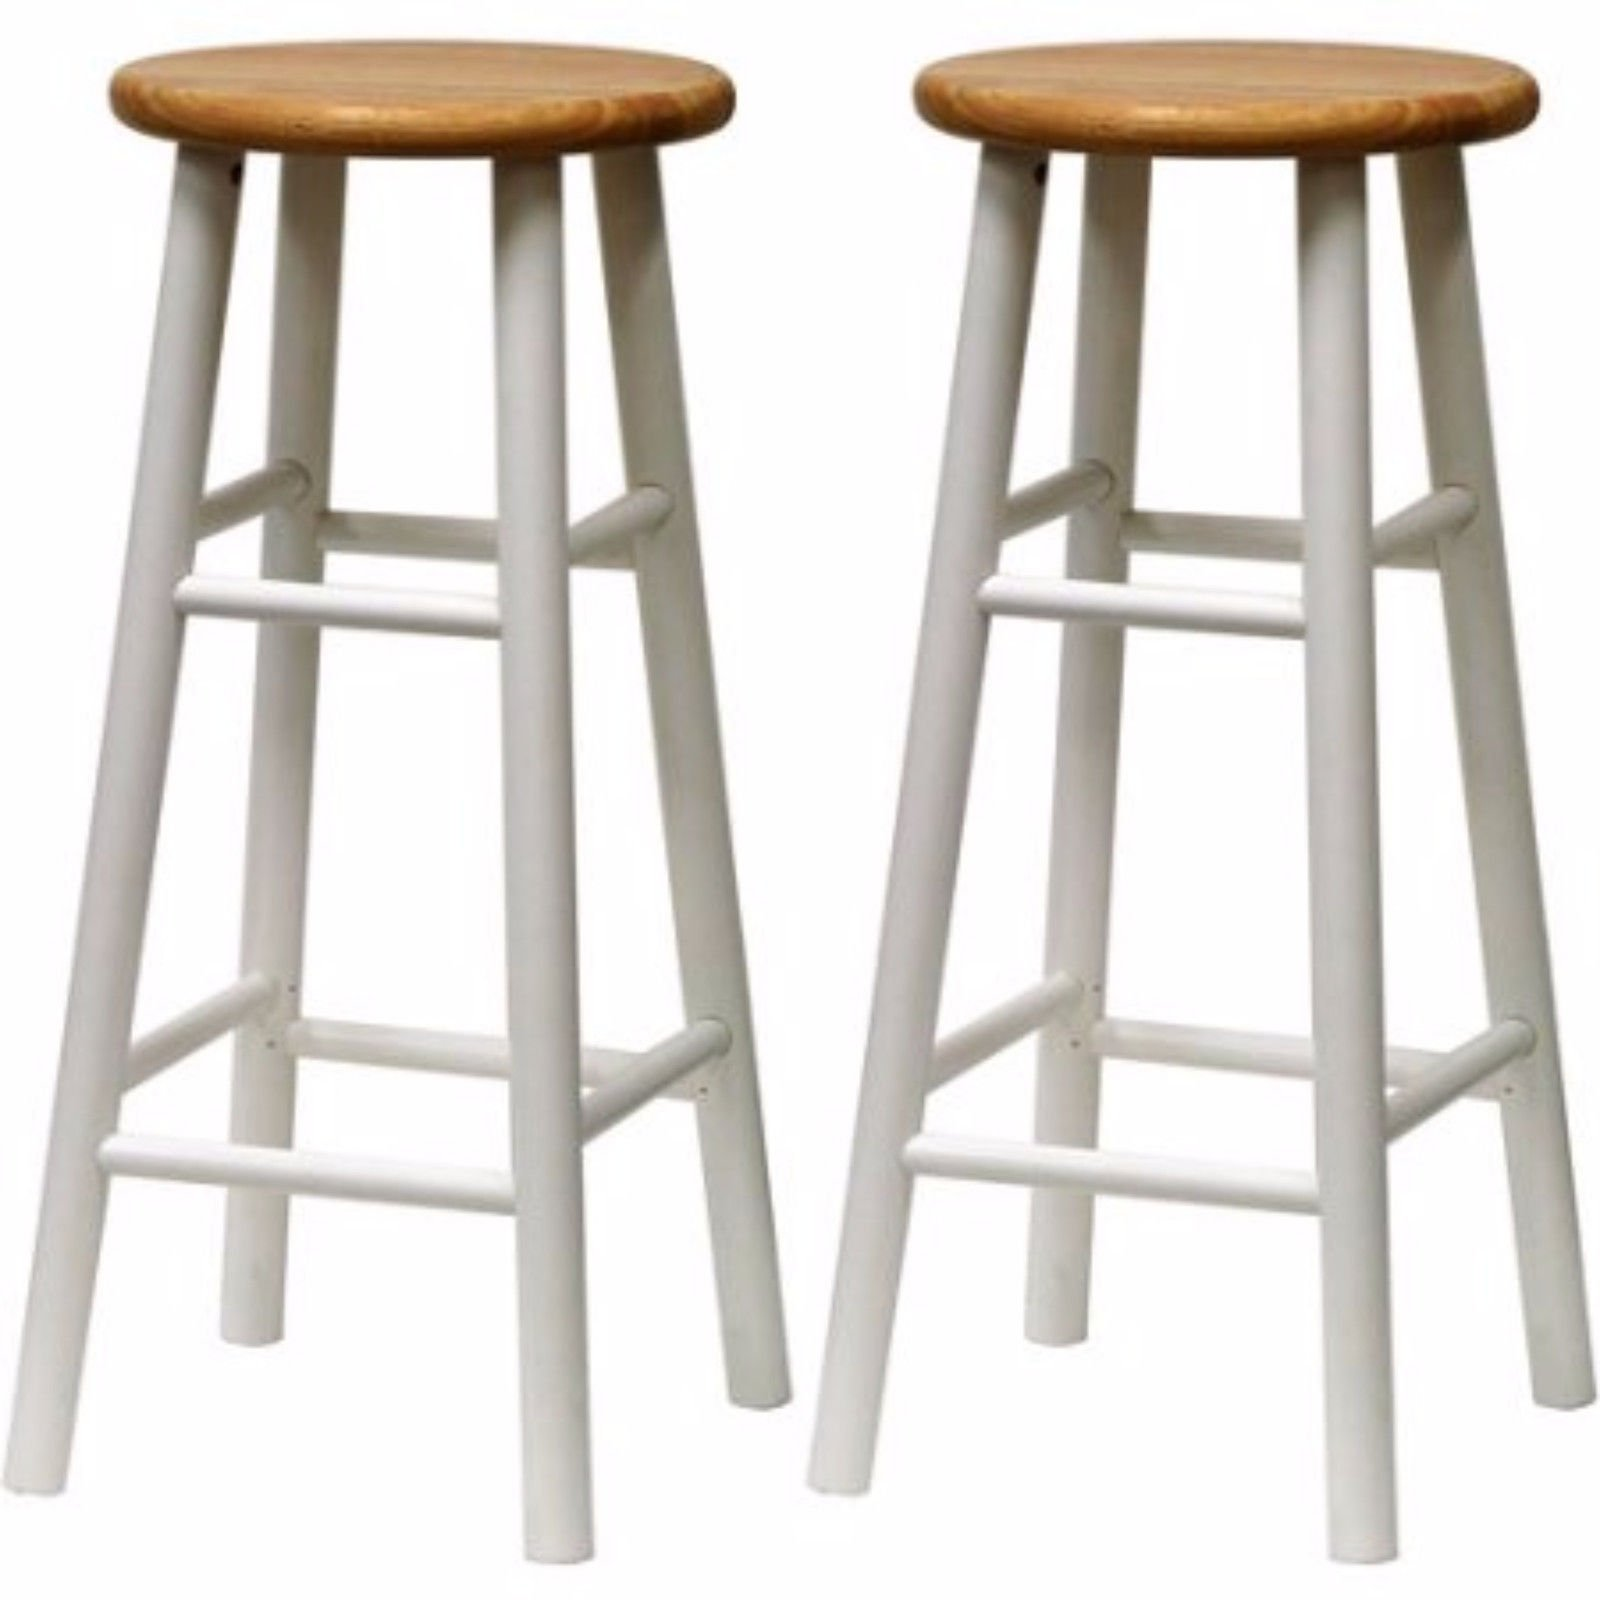 Wooden Bar Stools Beveled Seat 30 Inch Beech Wood Bar Stools Set of 2 White Bar Pub Bistro Restaurant